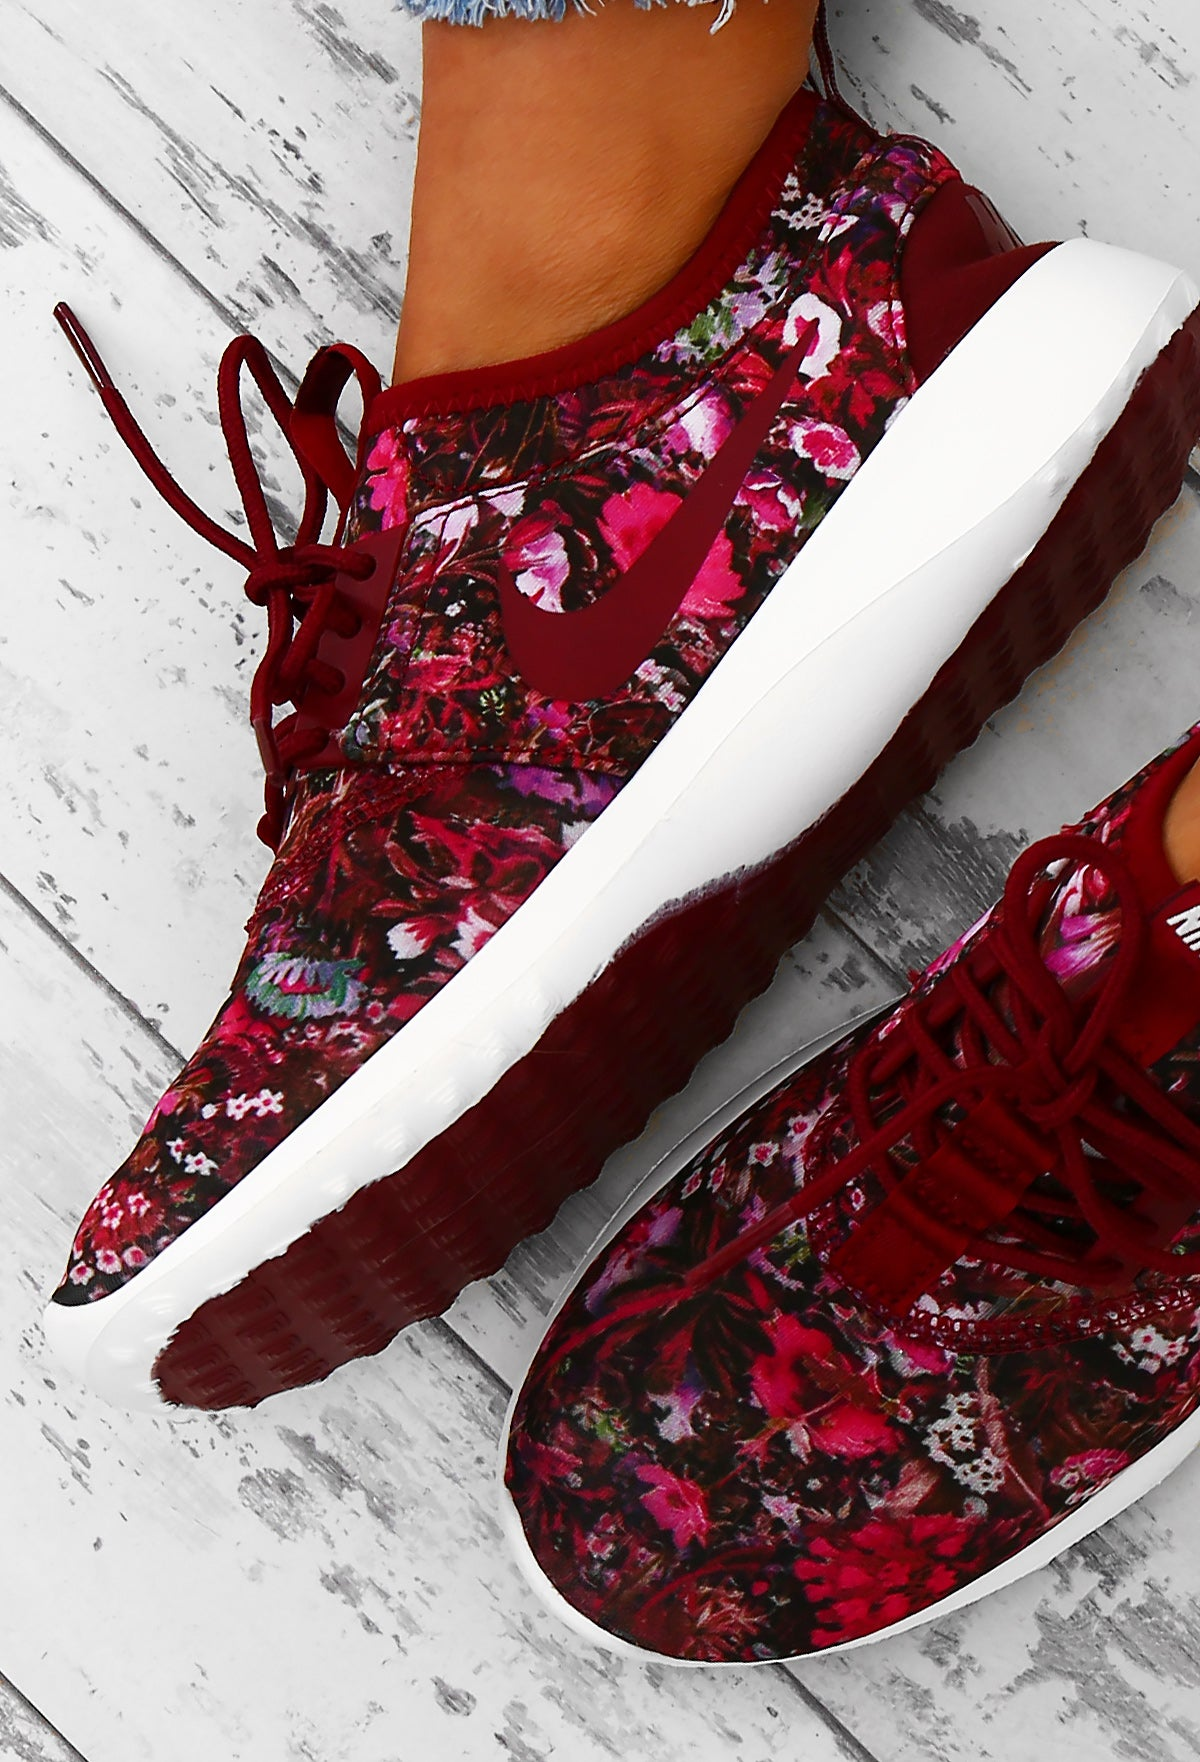 7ba8e073d5337 Nike Juvenate SE Team Burgundy Floral Trainers – Pink Boutique UK